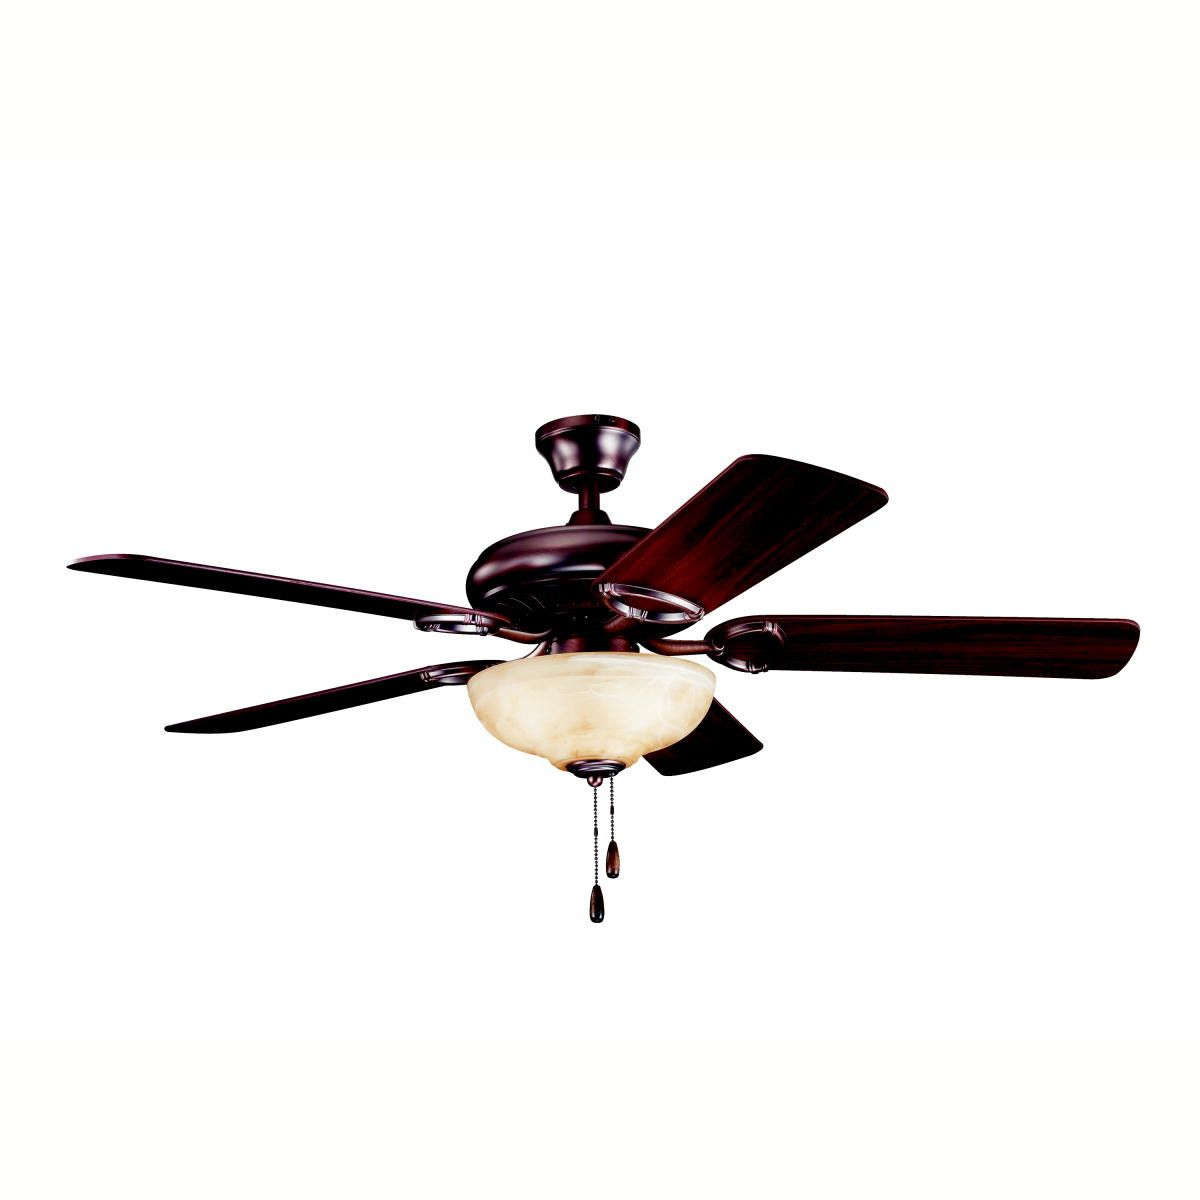 Shop kichler lighting 339211 3 light sutter place select ceiling fan at lowes canada find our selection of ceiling fans at the lowest price guaranteed